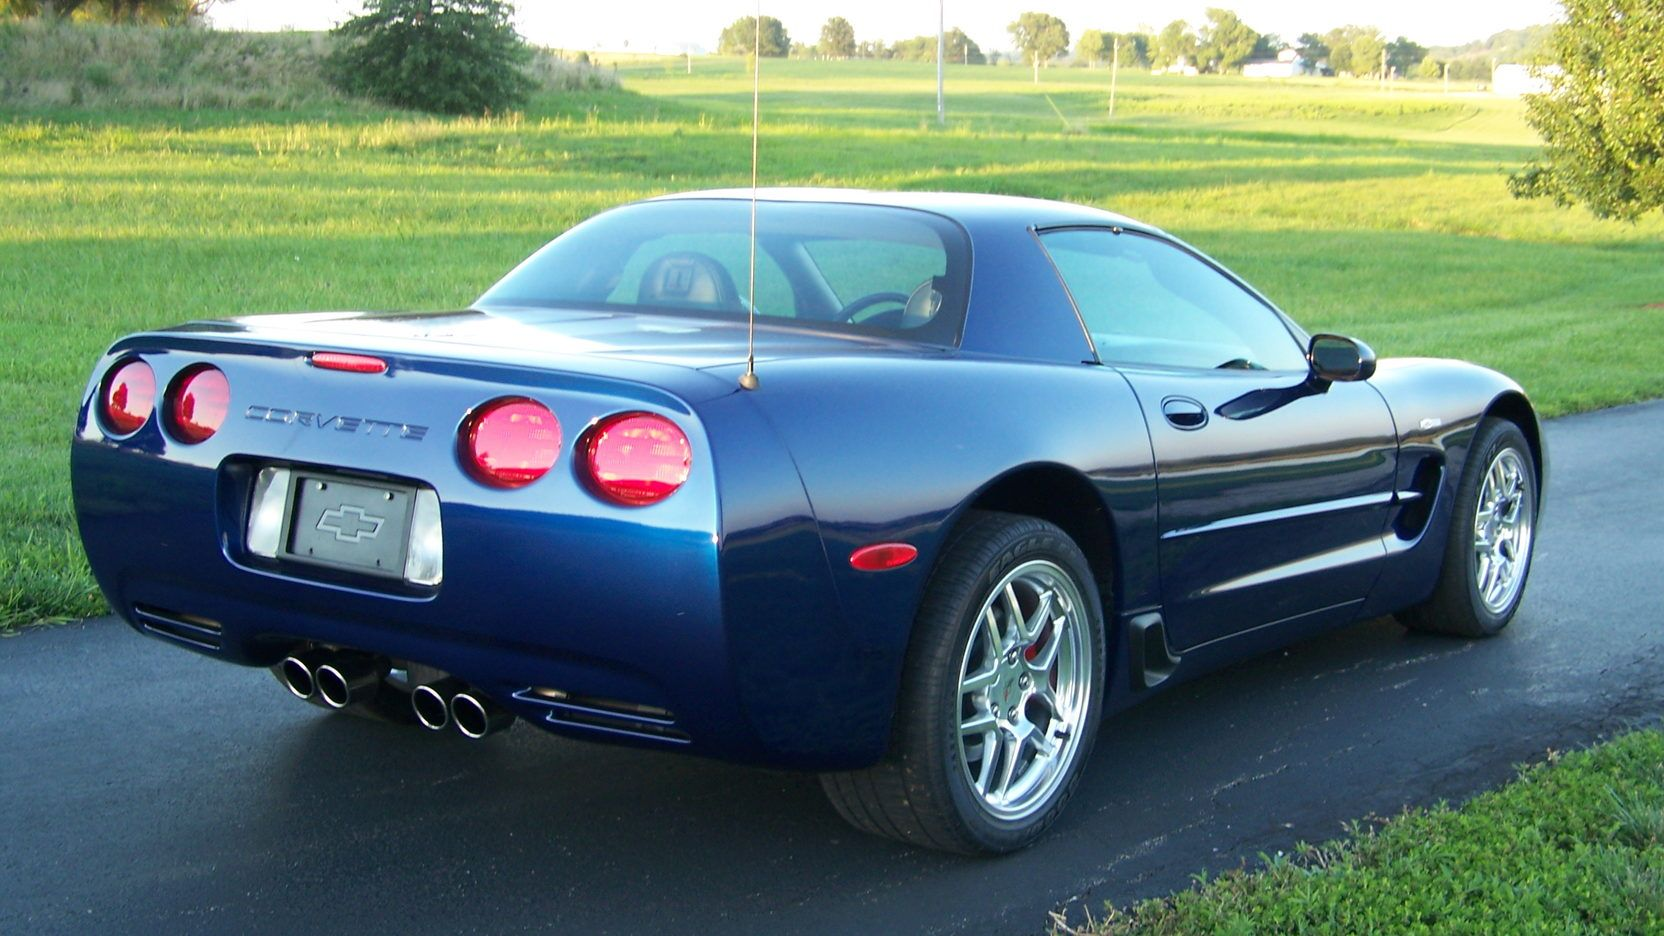 2004 Chevrolet Corvette Z06 Commemorative Edition Presented As Lot